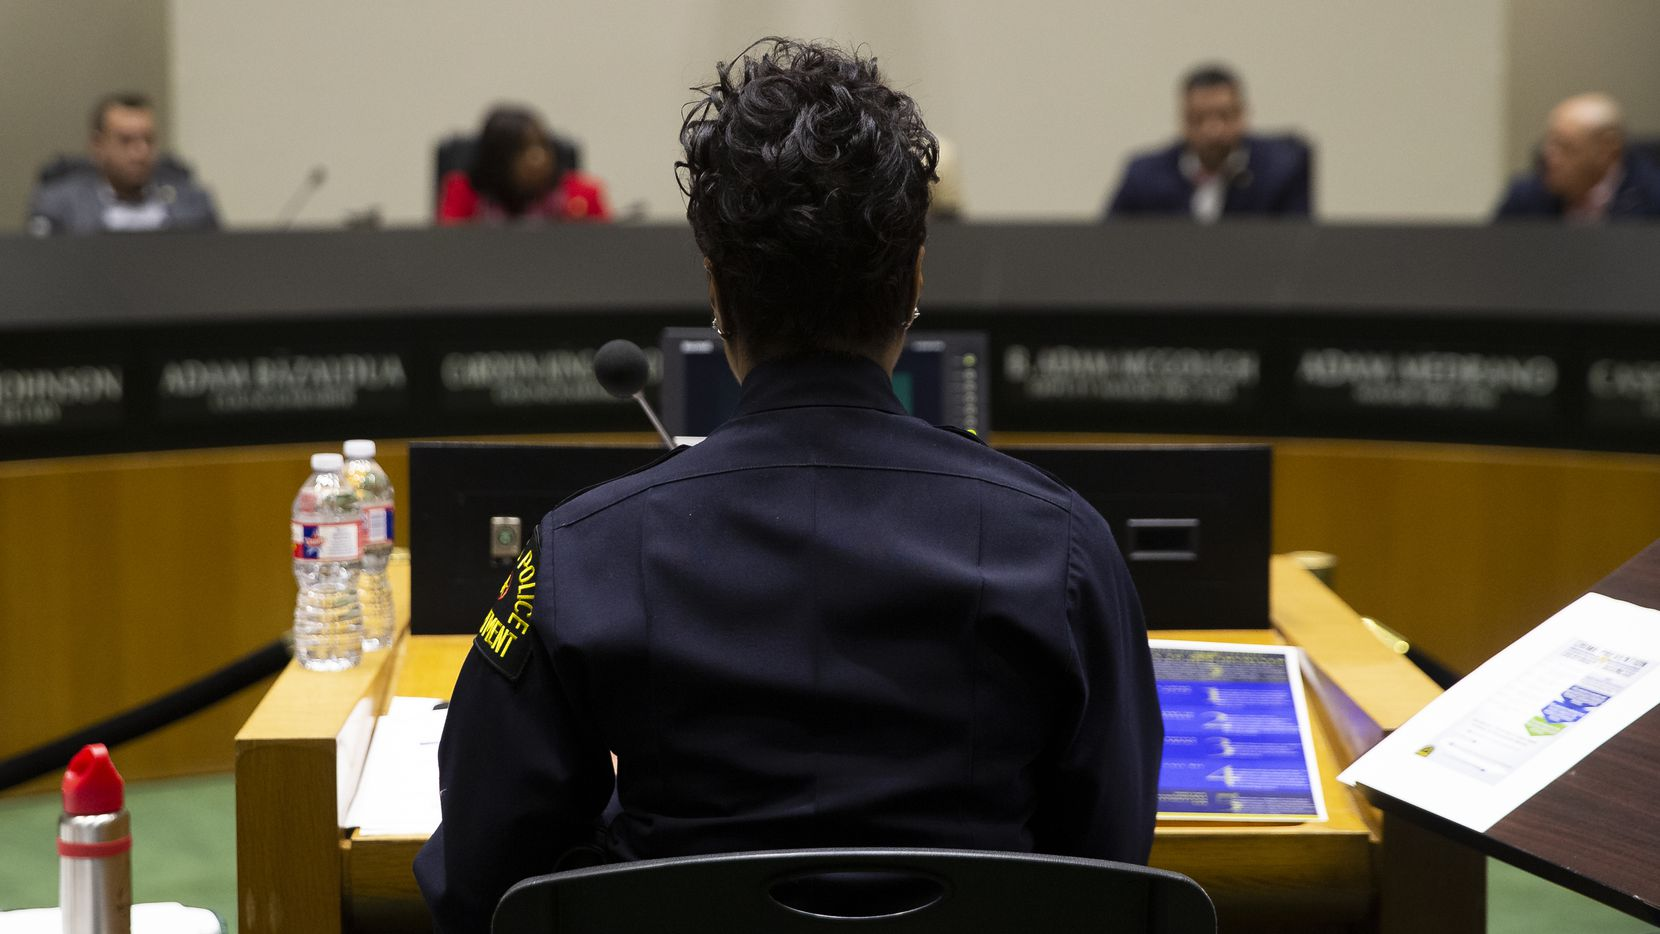 Dallas Police Chief U. Renee Hall (center) at the council's Public Safety Committee meeting at Dallas City Hall on Jan. 13, 2020 in Dallas. The council discussed the chief's 26-page report on crime reduction strategies for 2020.